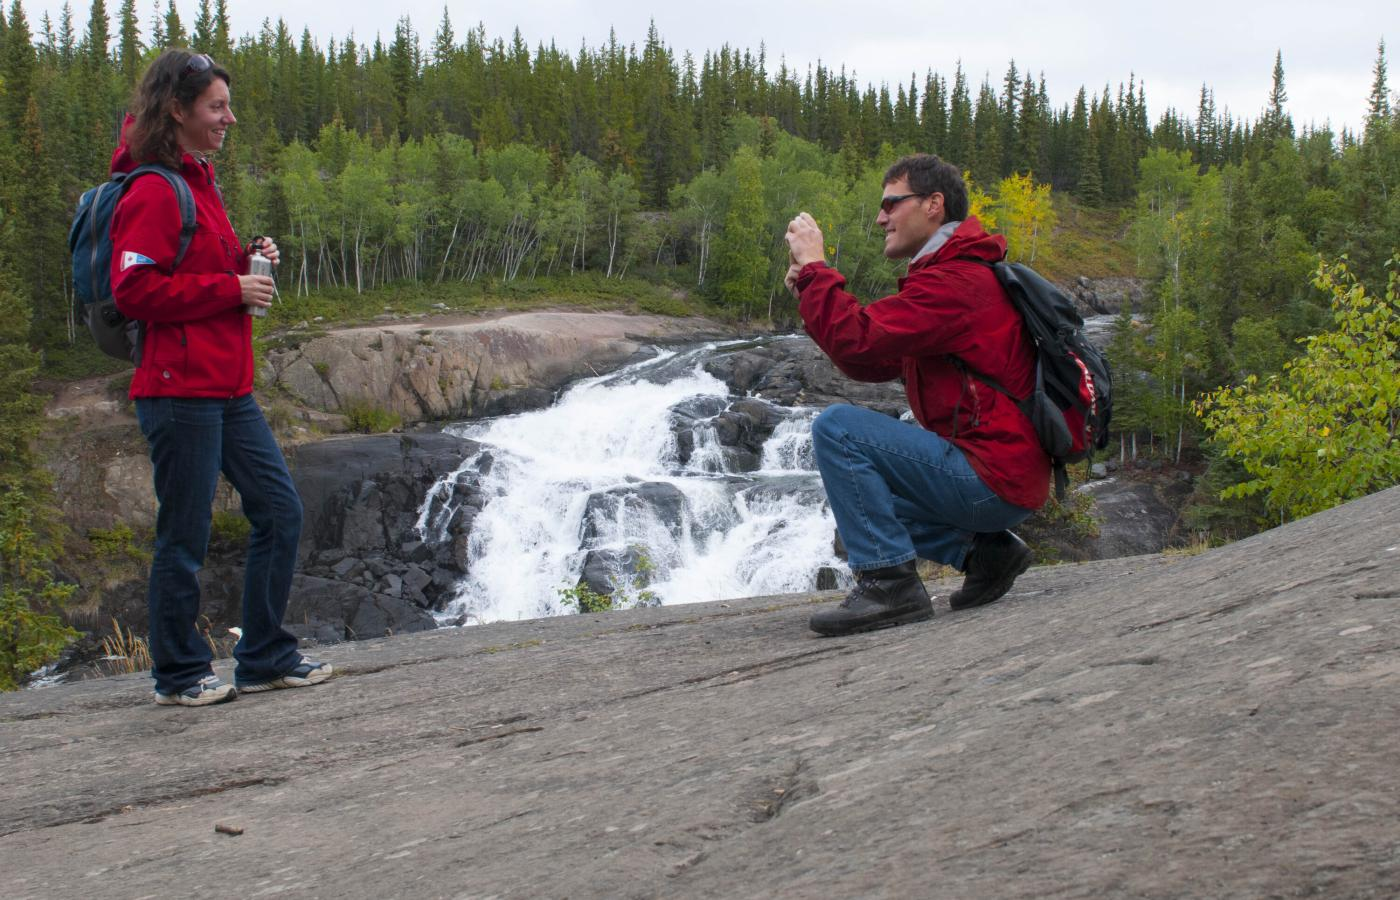 Cameron Falls is a short drive outside of Yellowknife, Northwest Territories, Canada